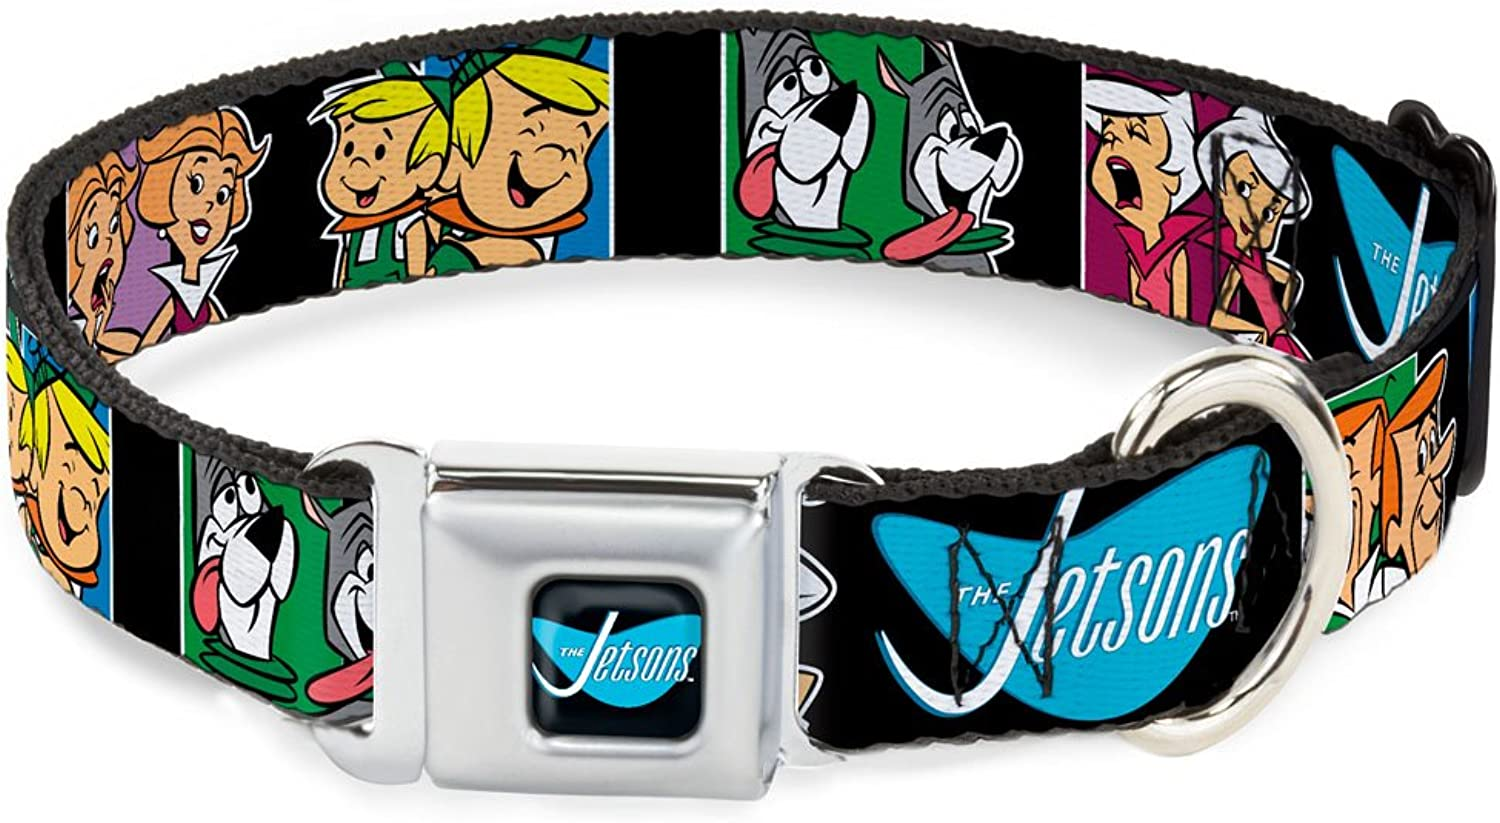 BuckleDown DCWJS003WL Dog Collar Seatbelt Buckle, The Jetsons Character Panel Expressions, 1.5  by 1832